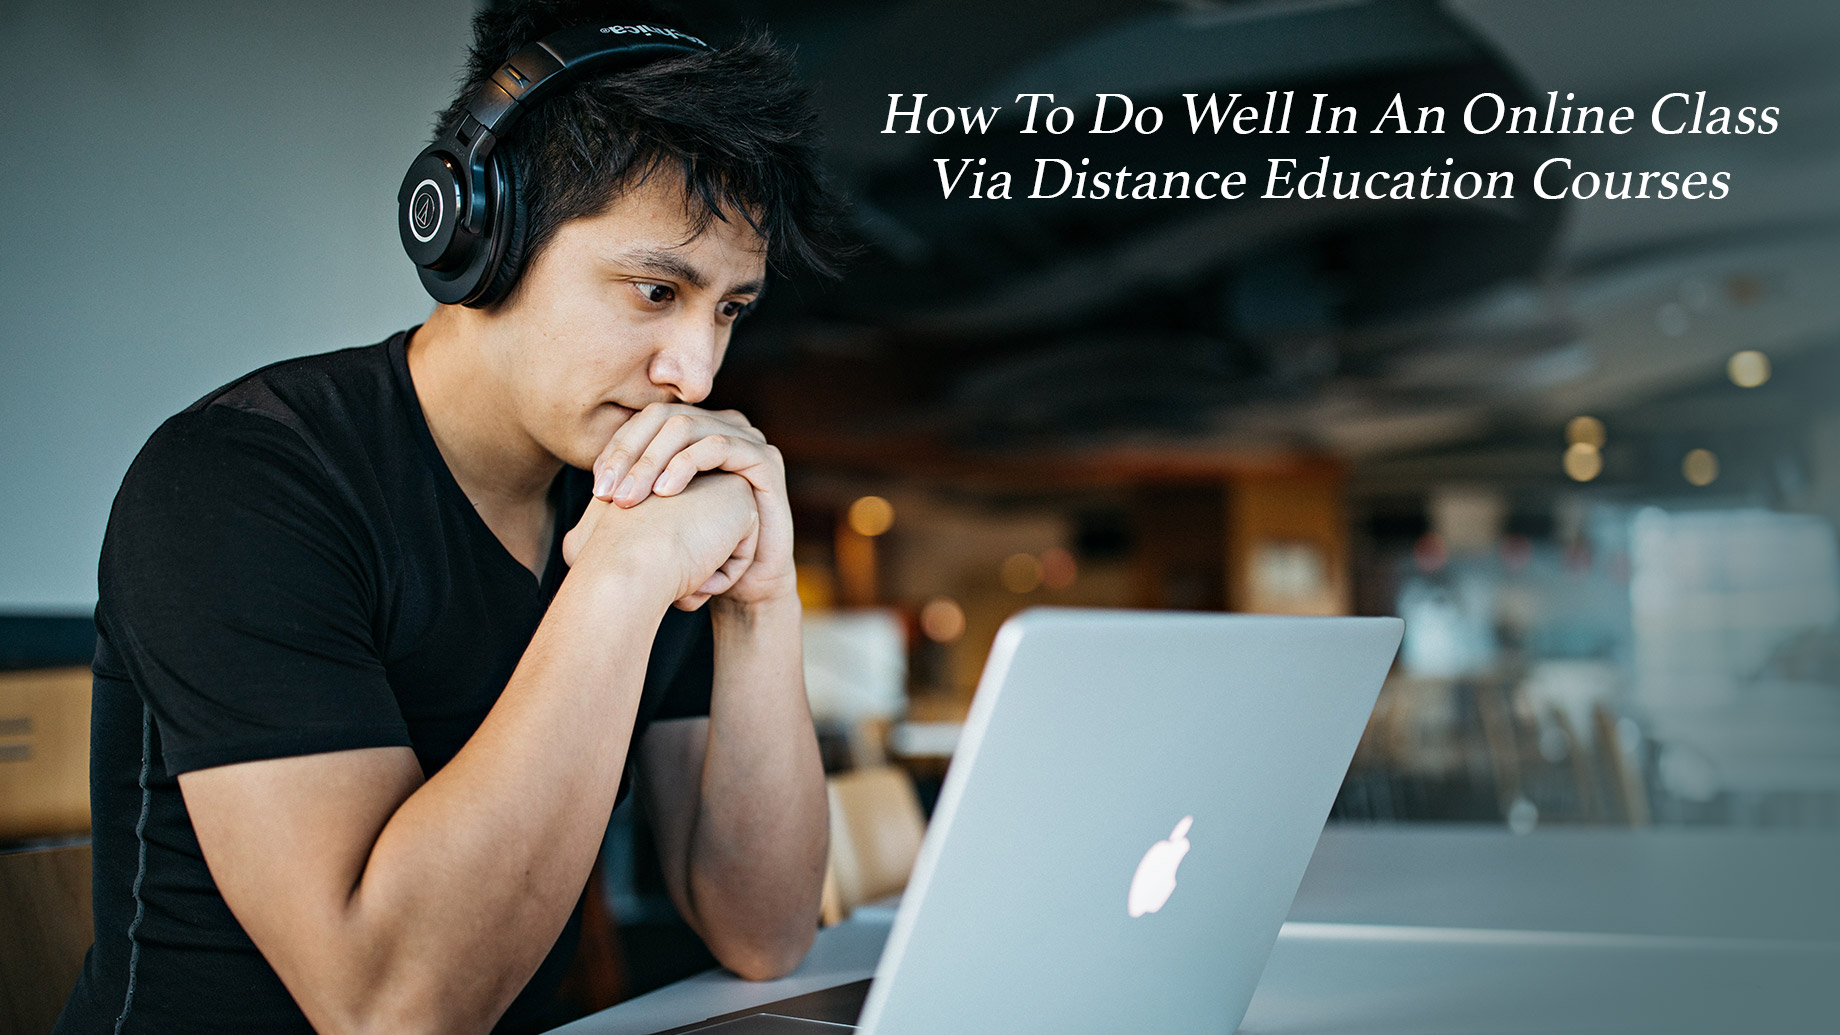 How To Do Well In An Online Class Via Distance Education Courses